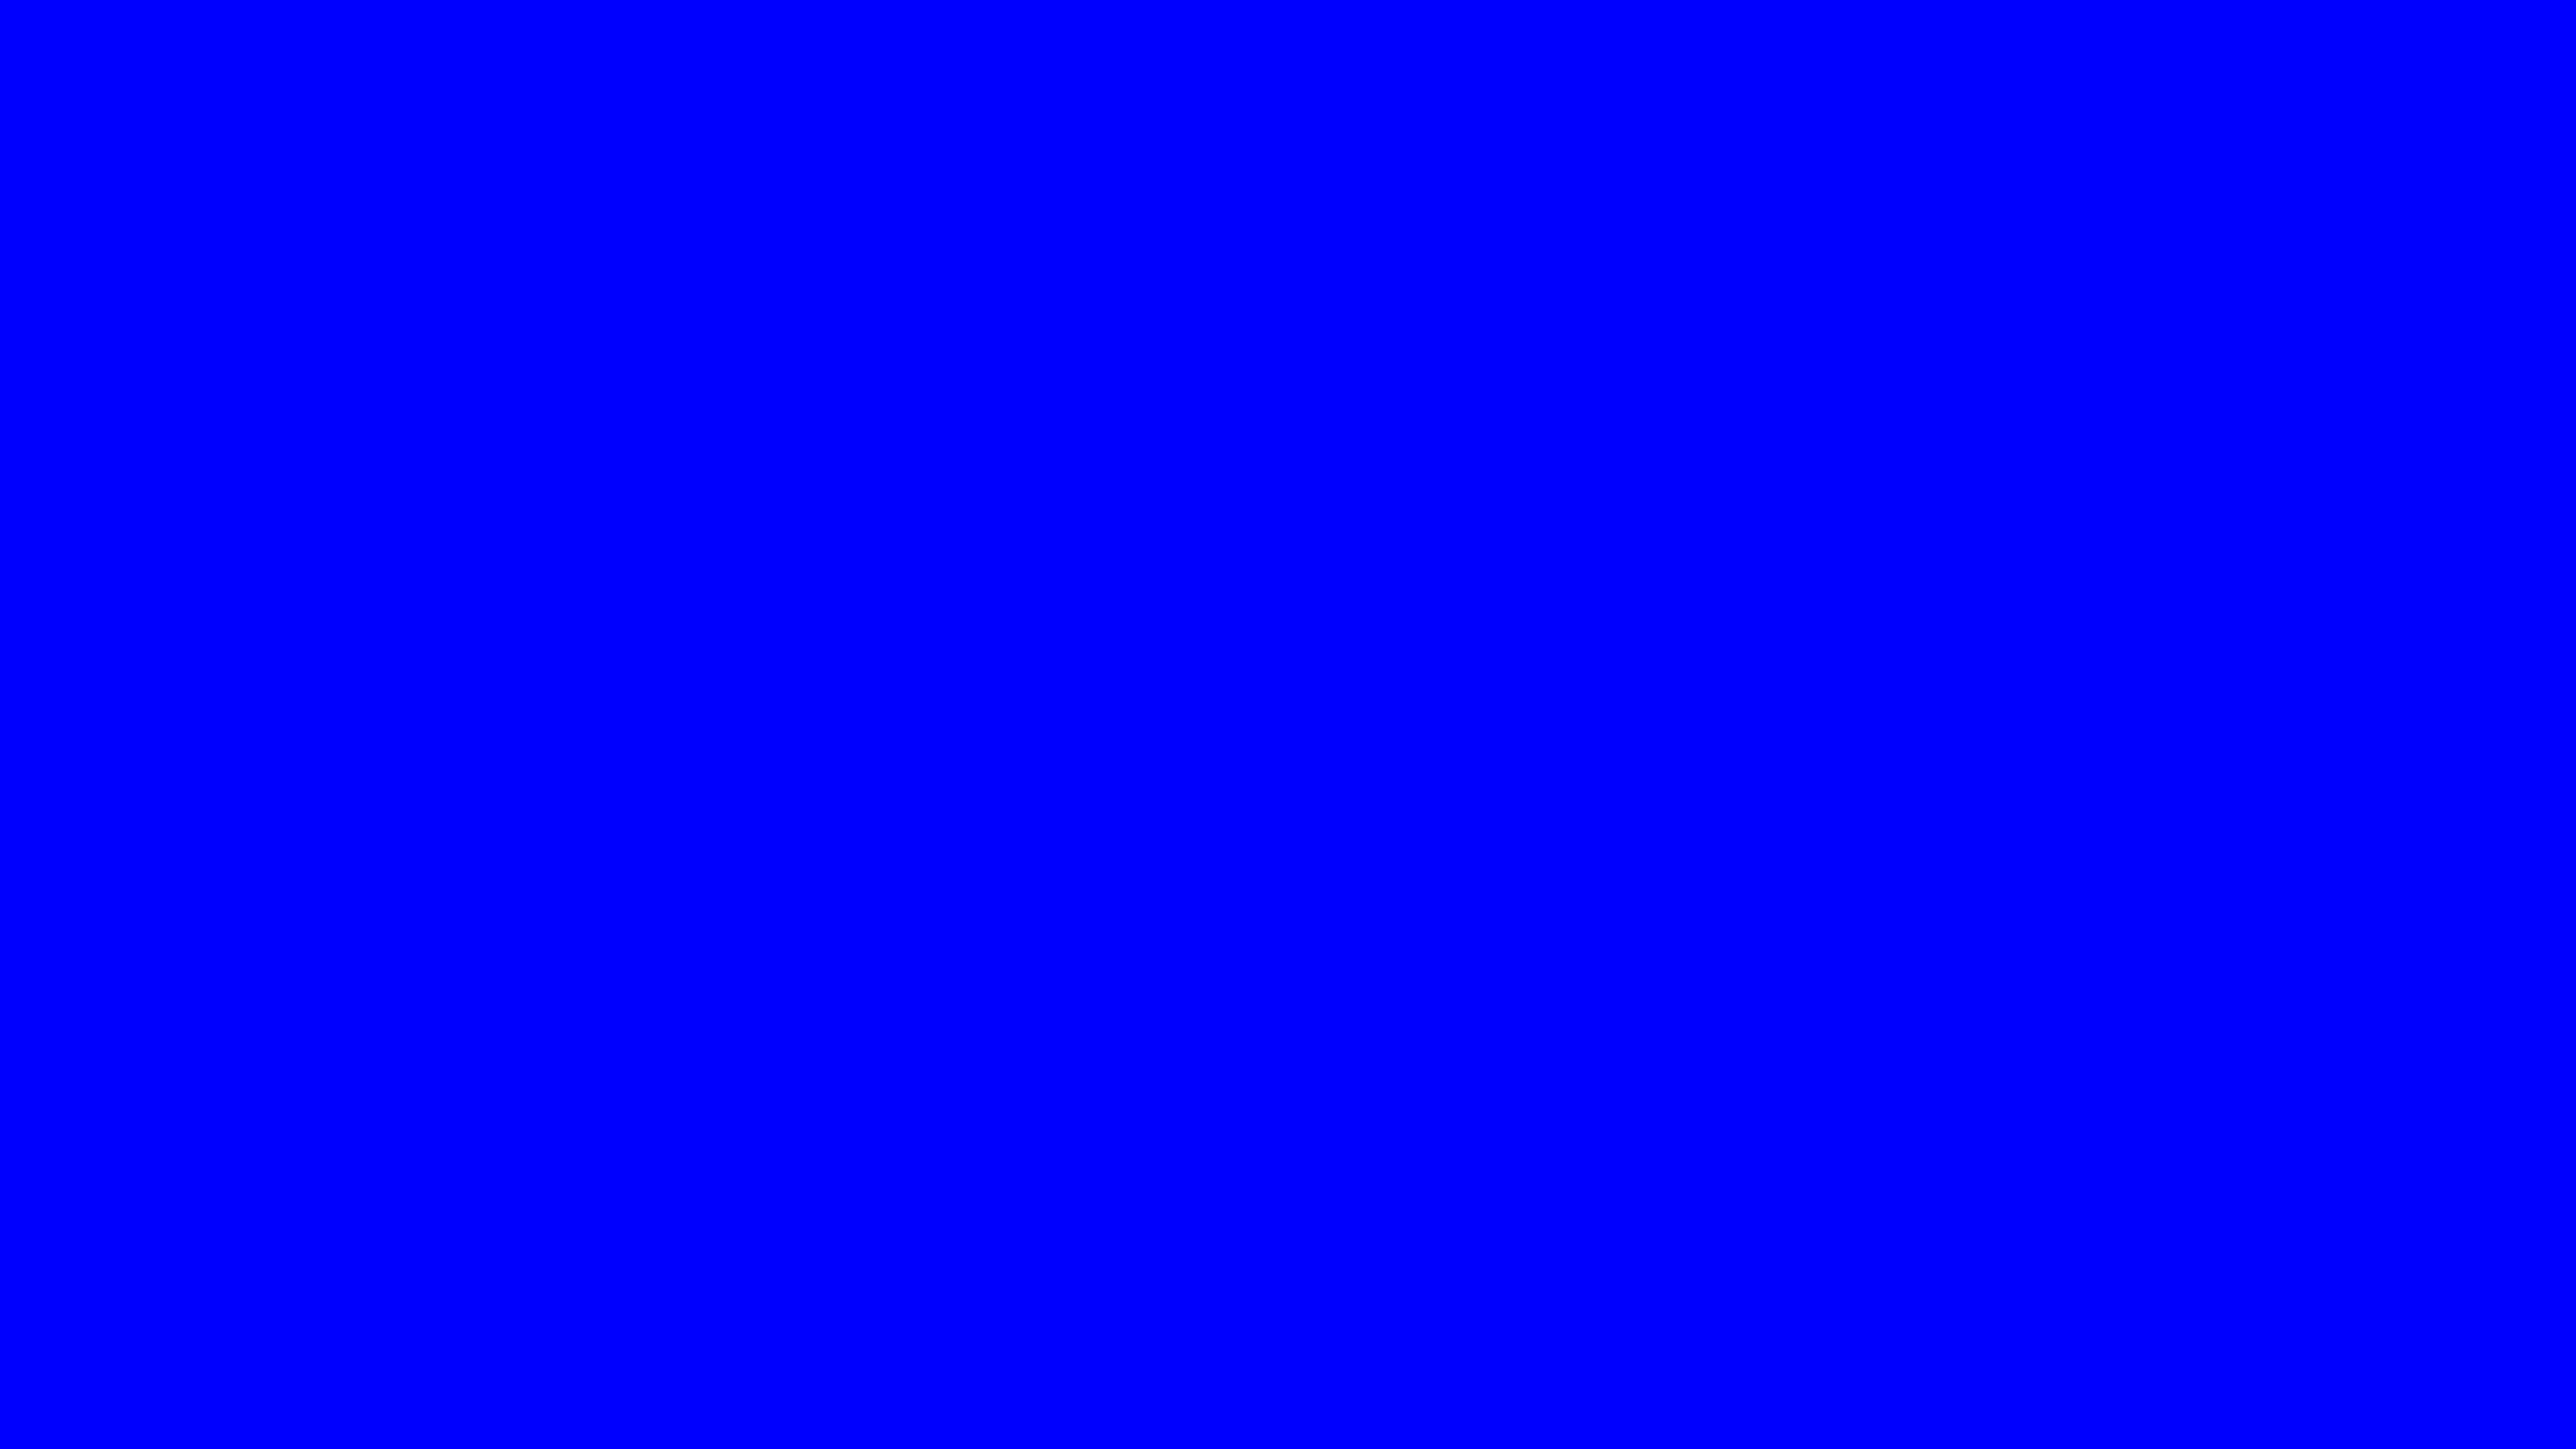 4096x2304 Blue Solid Color Background